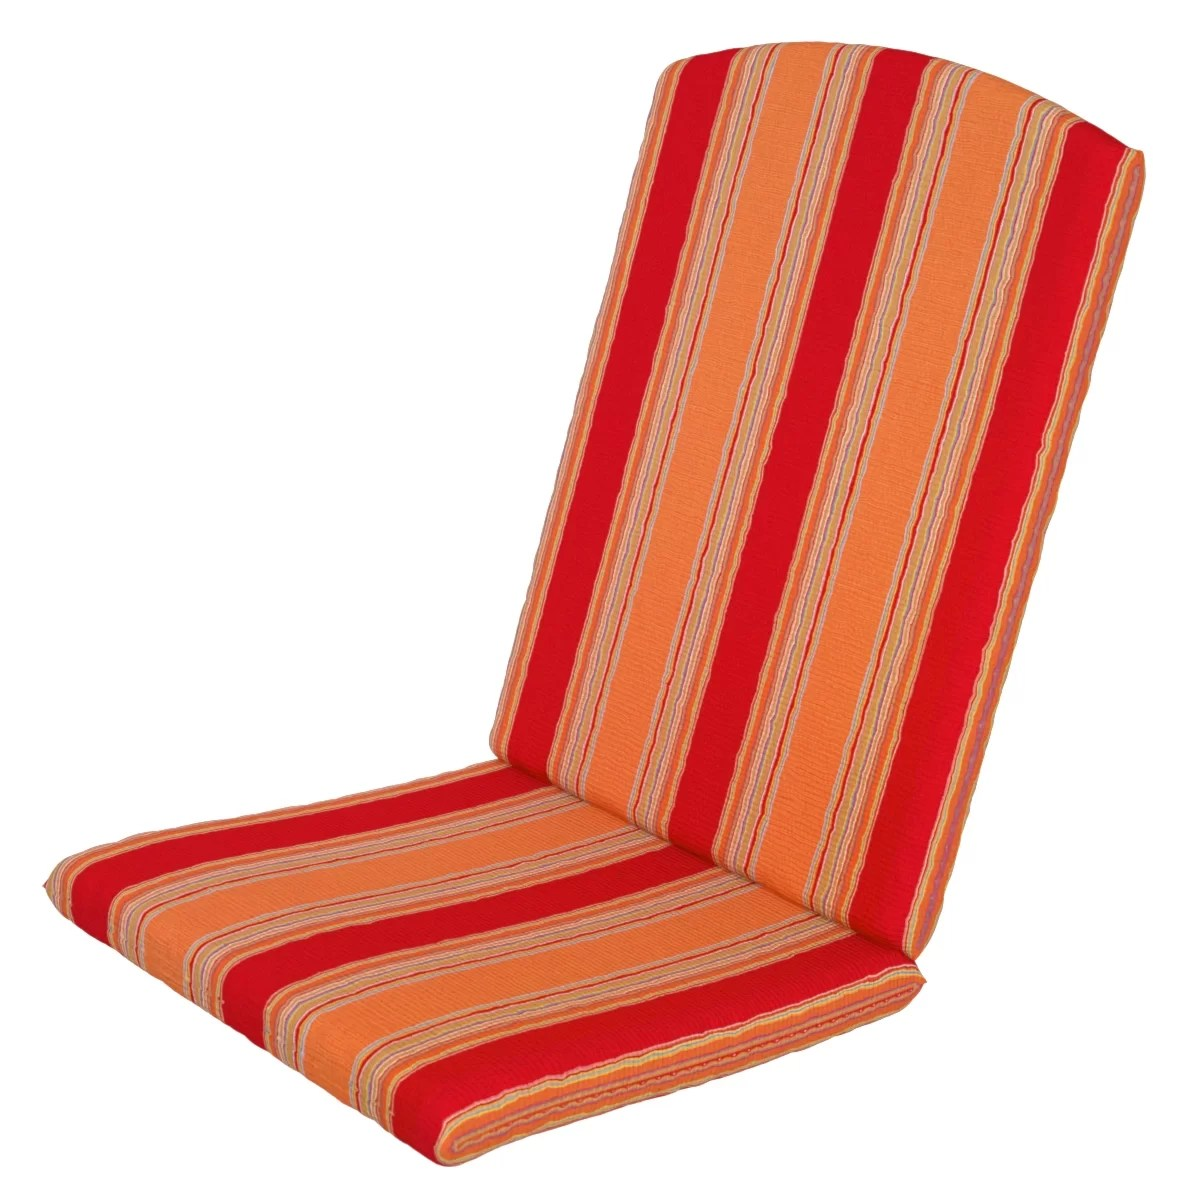 Trex Rocking Chairs Trex Trex Outdoor Sunbrella Rocking Chair Cushion